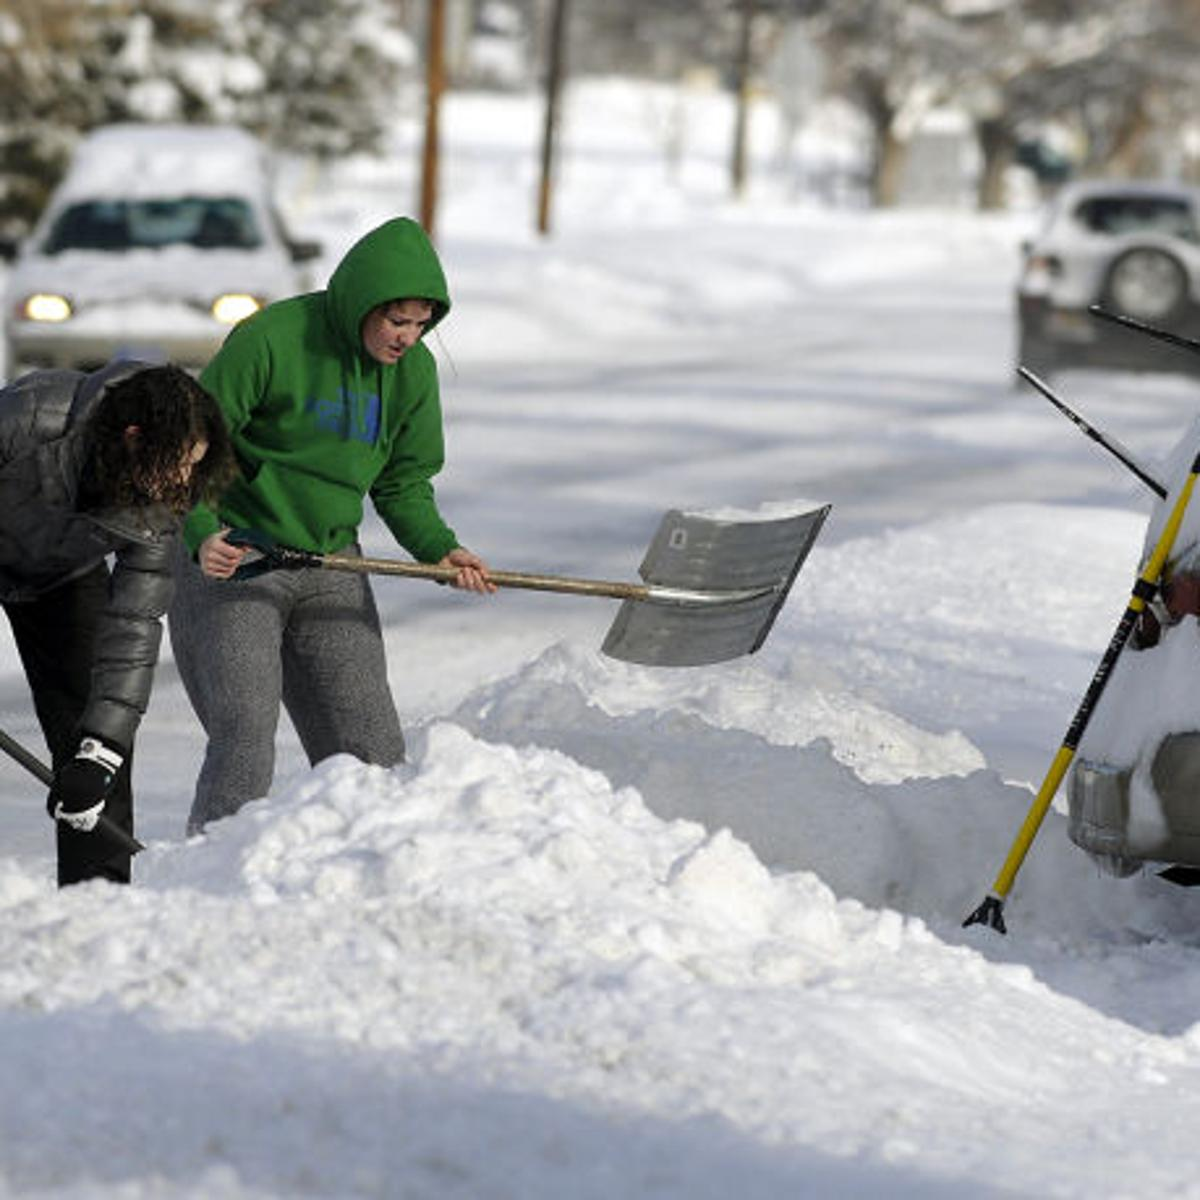 National Weather Service warns of blizzard blowing across